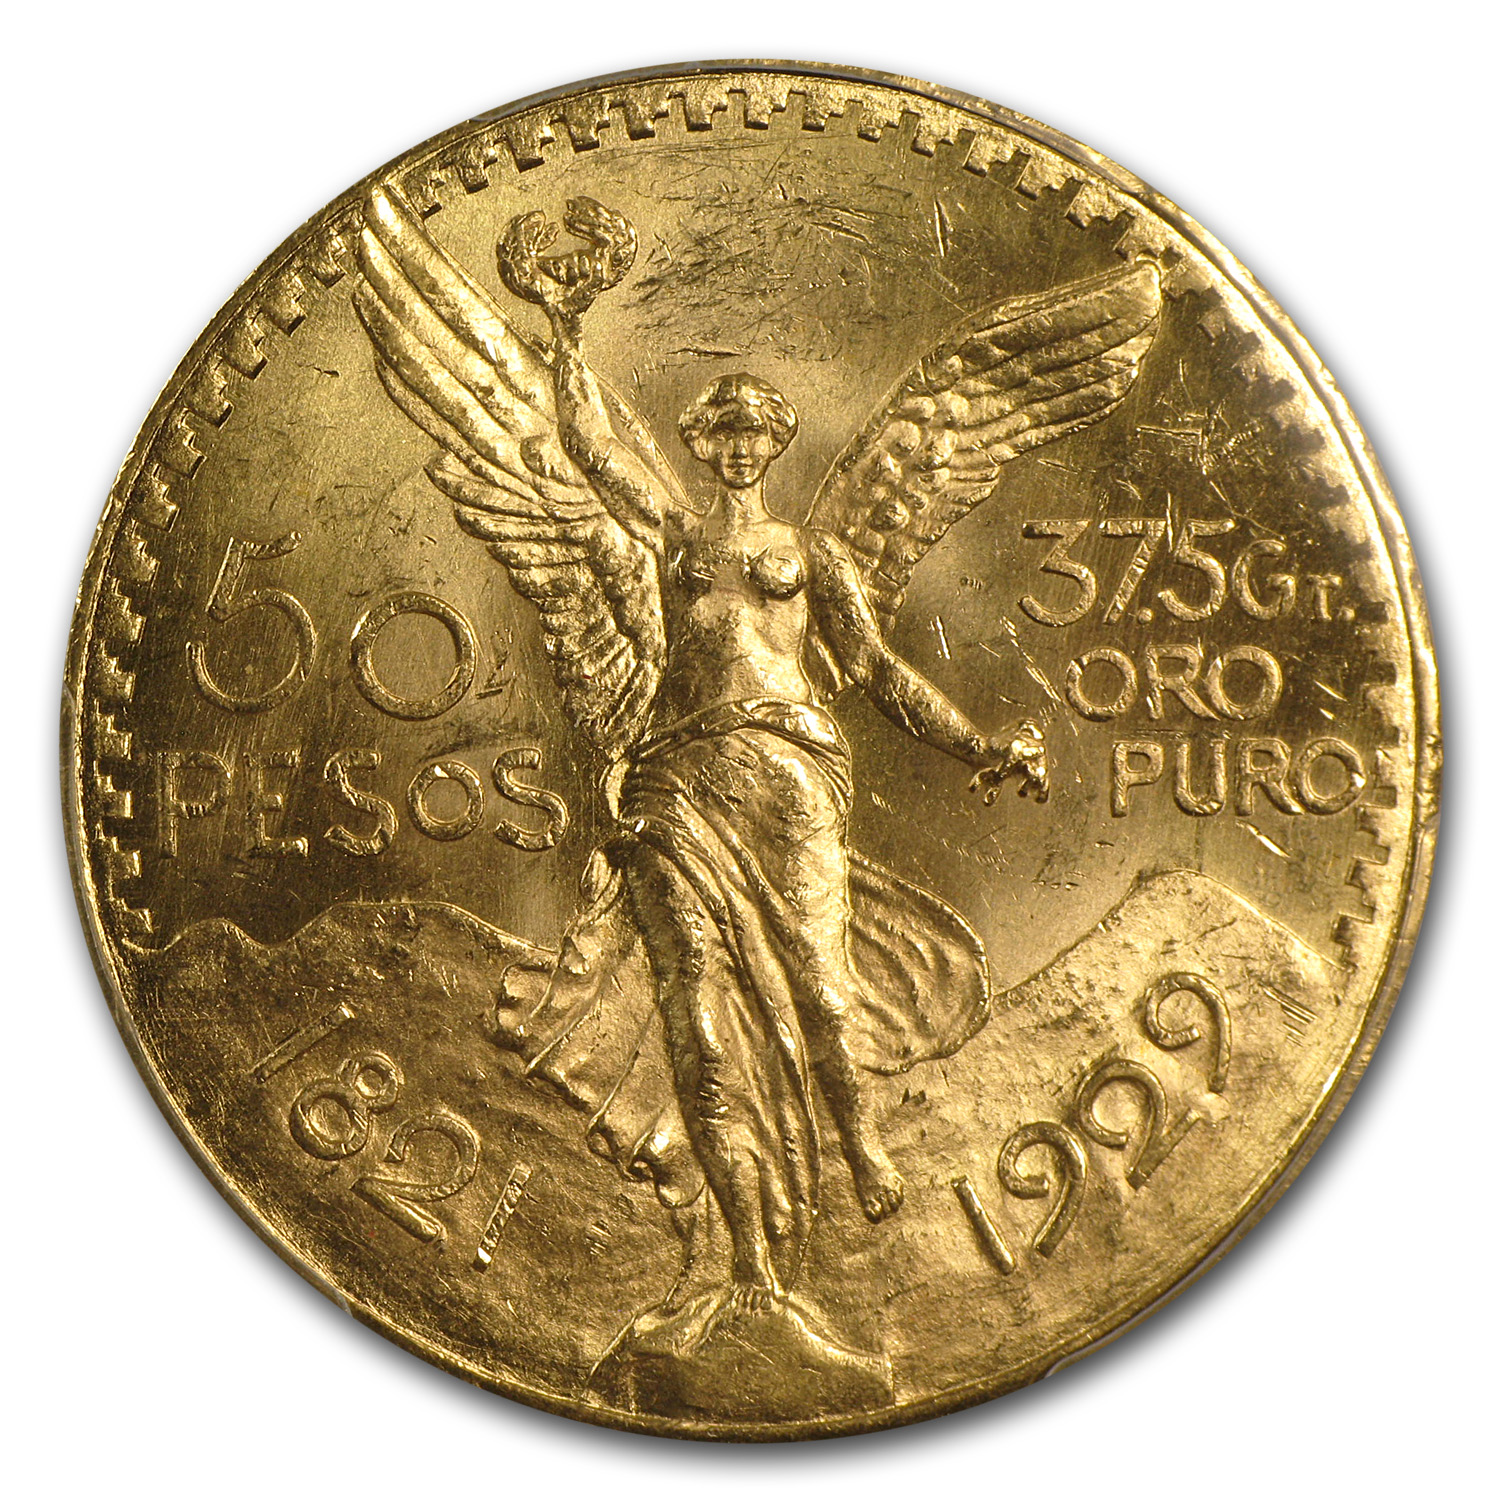 Mexico 1929 50 Pesos Gold Coin - MS-63 PCGS